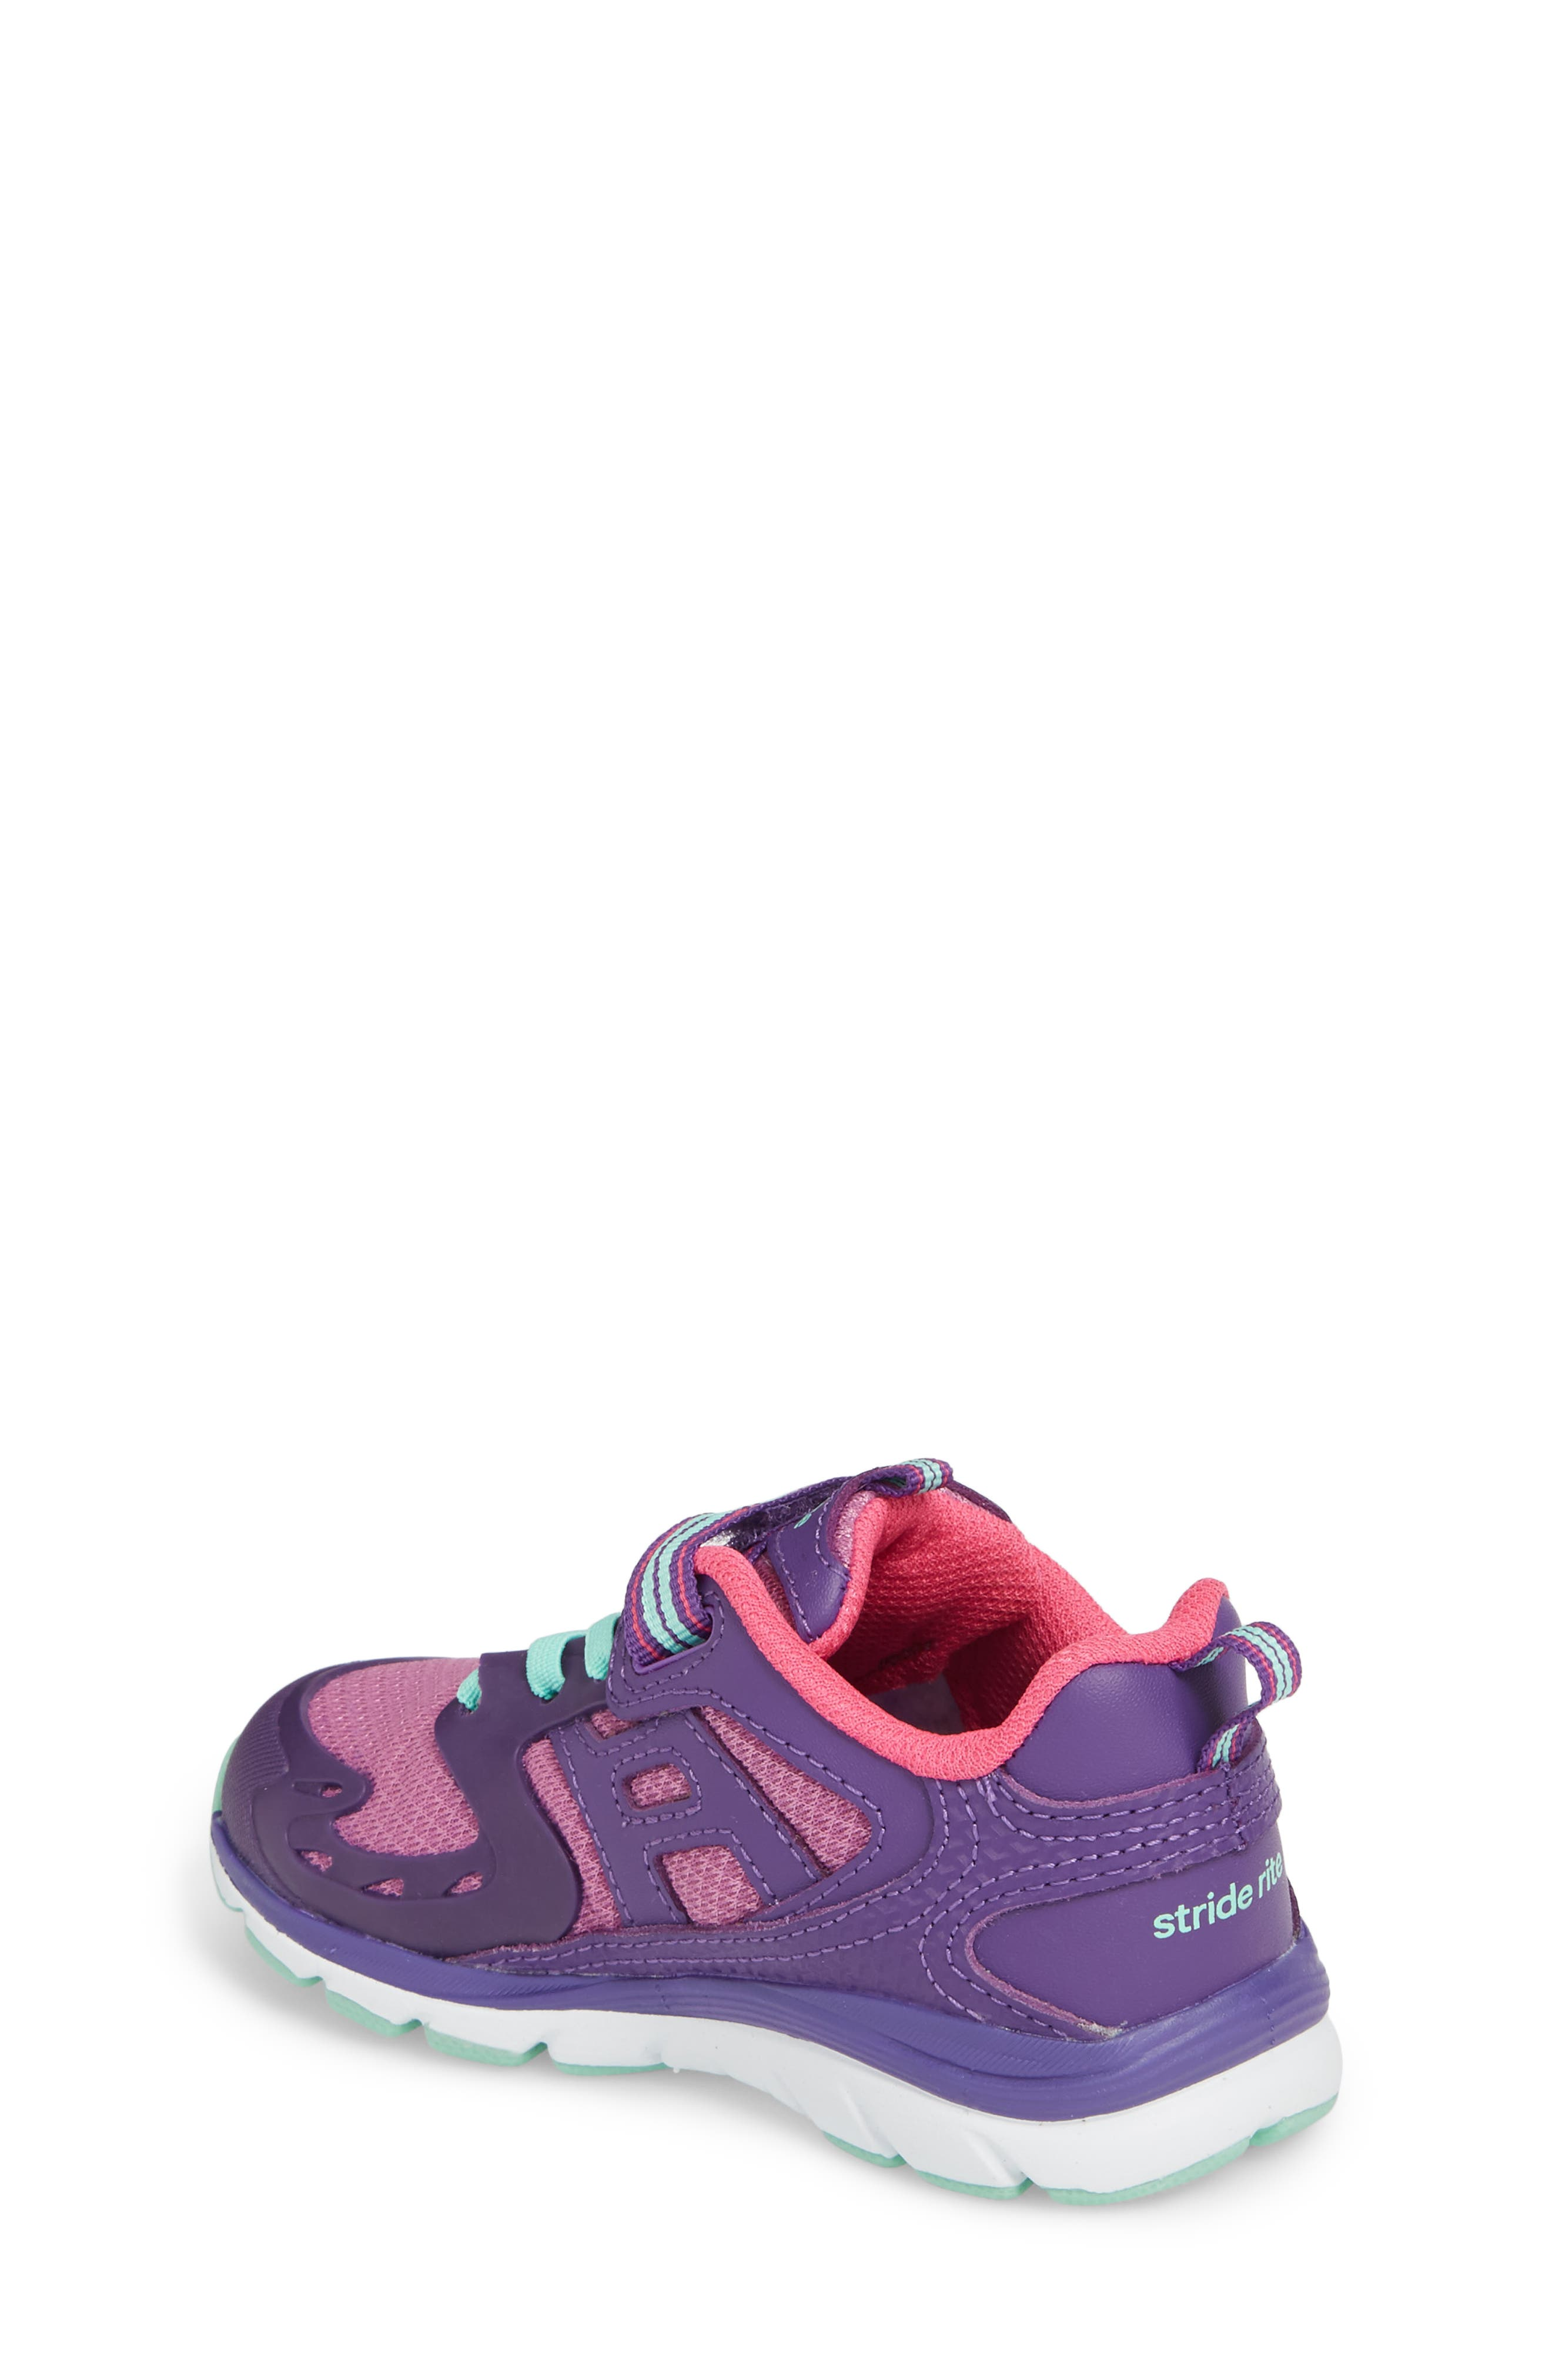 'Made2Play<sup>®</sup> Cannan Lace' Sneaker,                             Alternate thumbnail 2, color,                             Purple Leather/ Textile